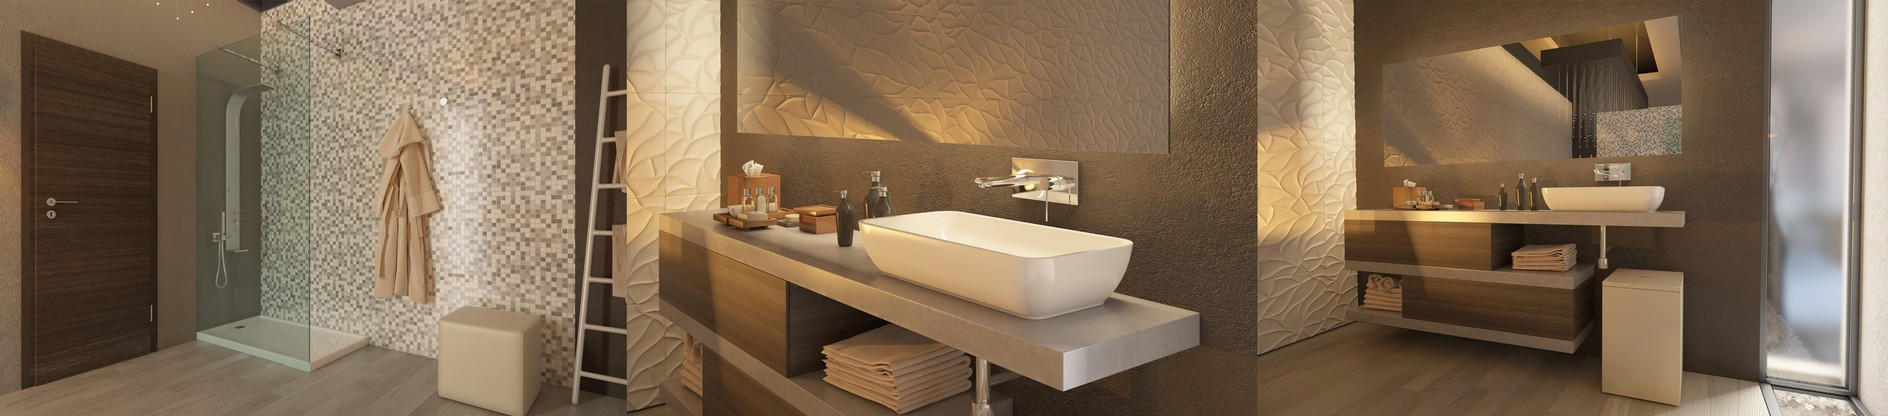 Concept - Massage and Beauty Cabin - eurocomaco